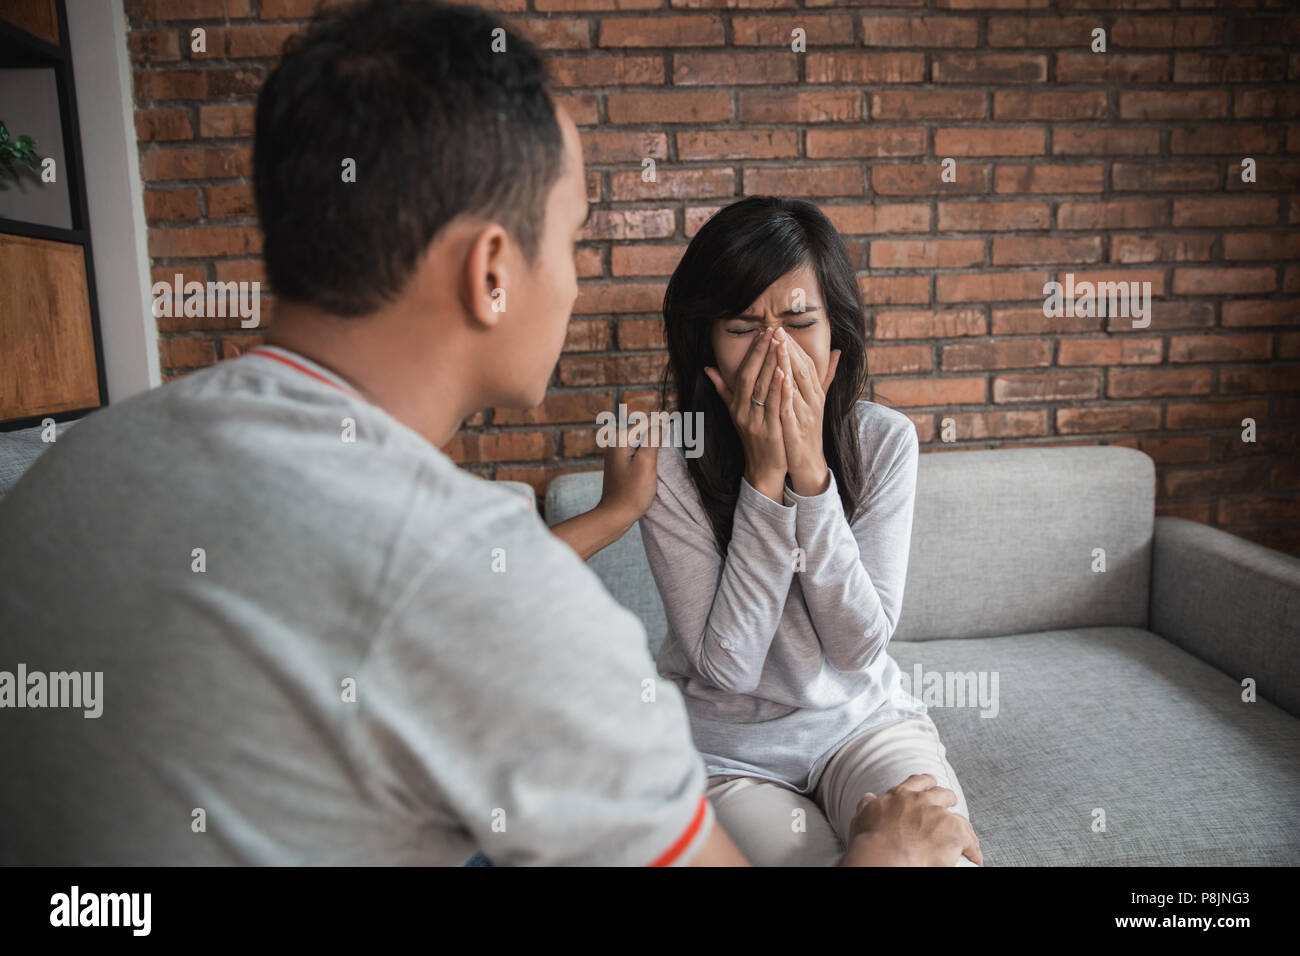 Dating a caring girl